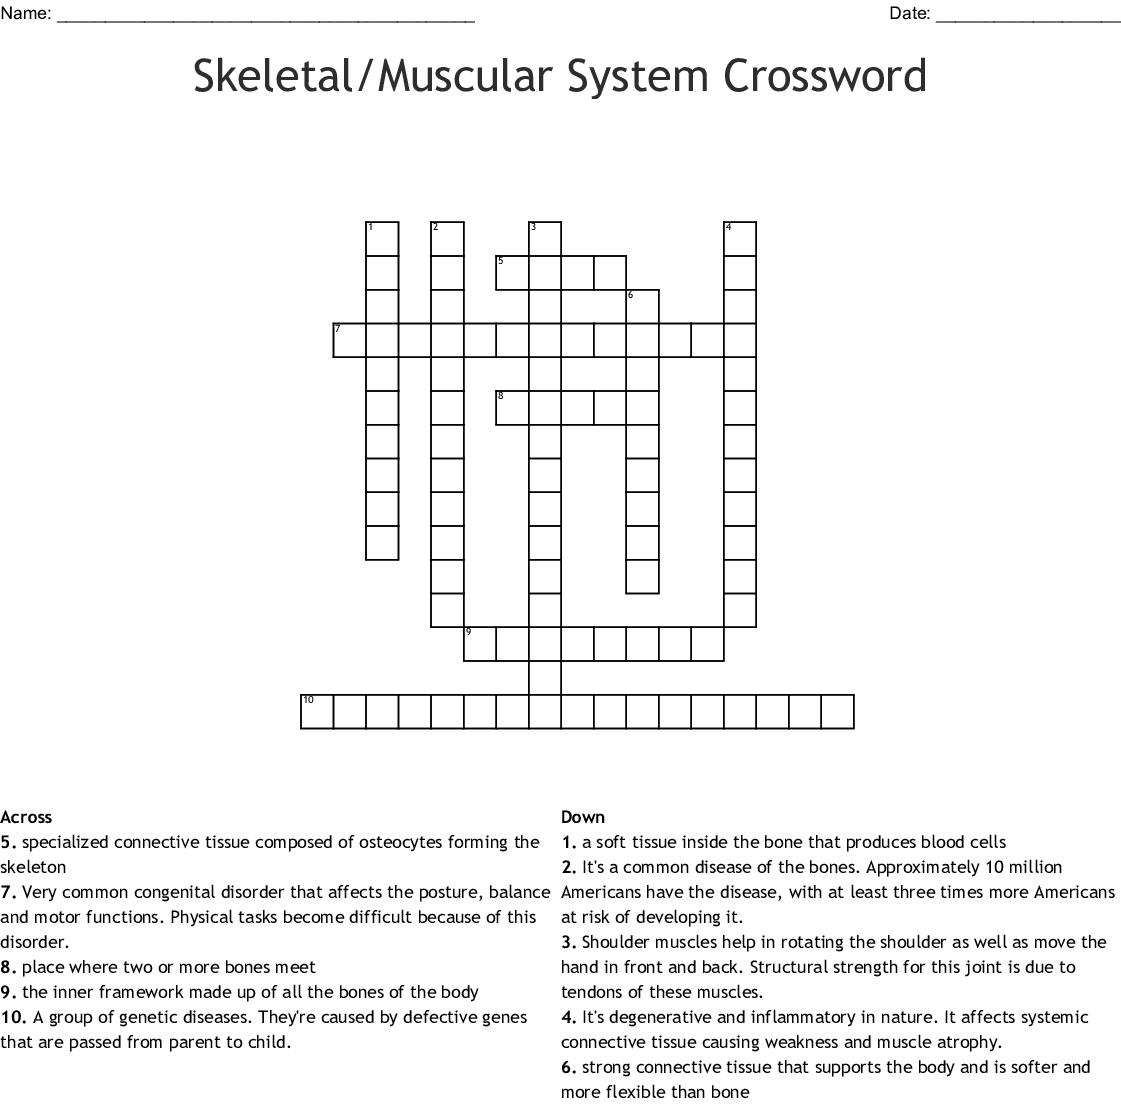 Integumentary, Skeletal and Muscular System Crossword ...